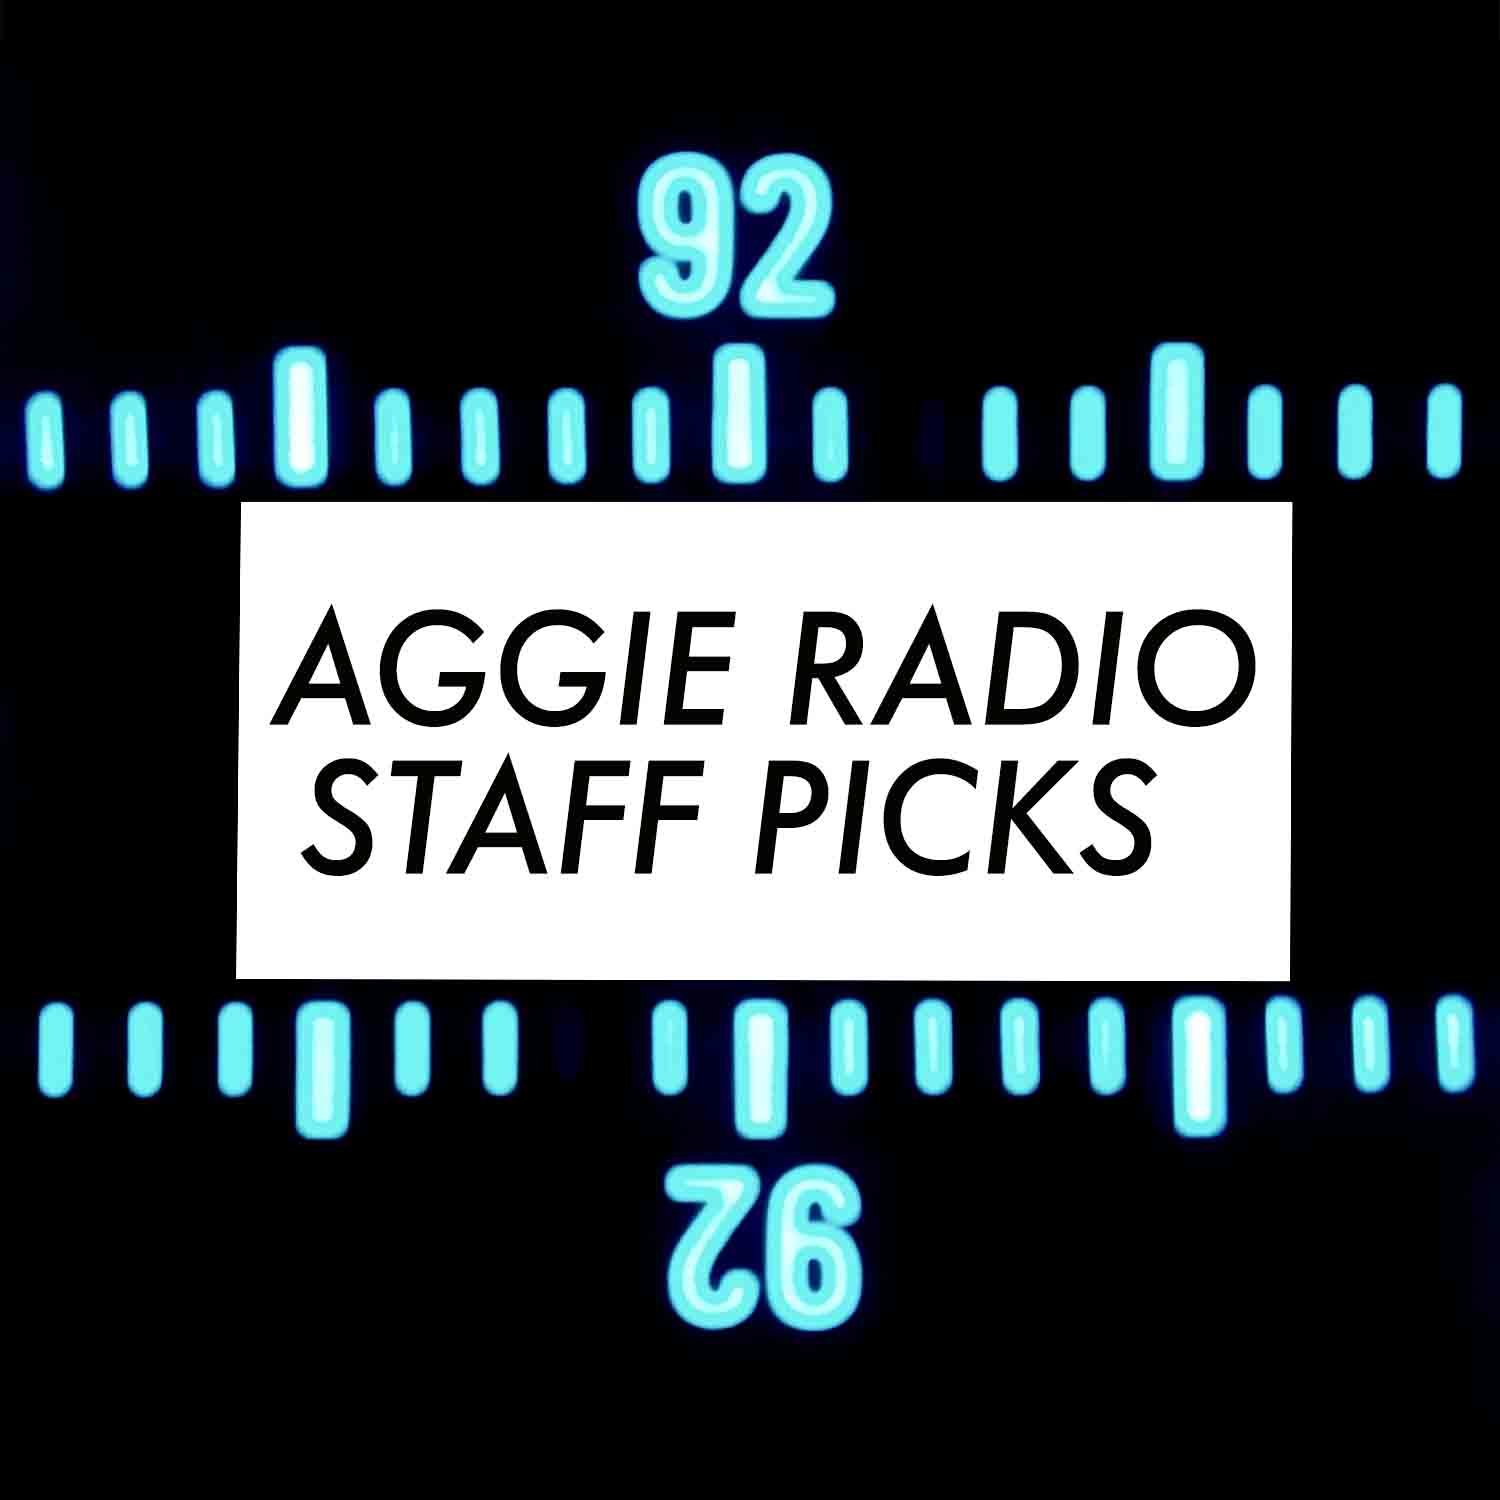 aggie radio staff picks